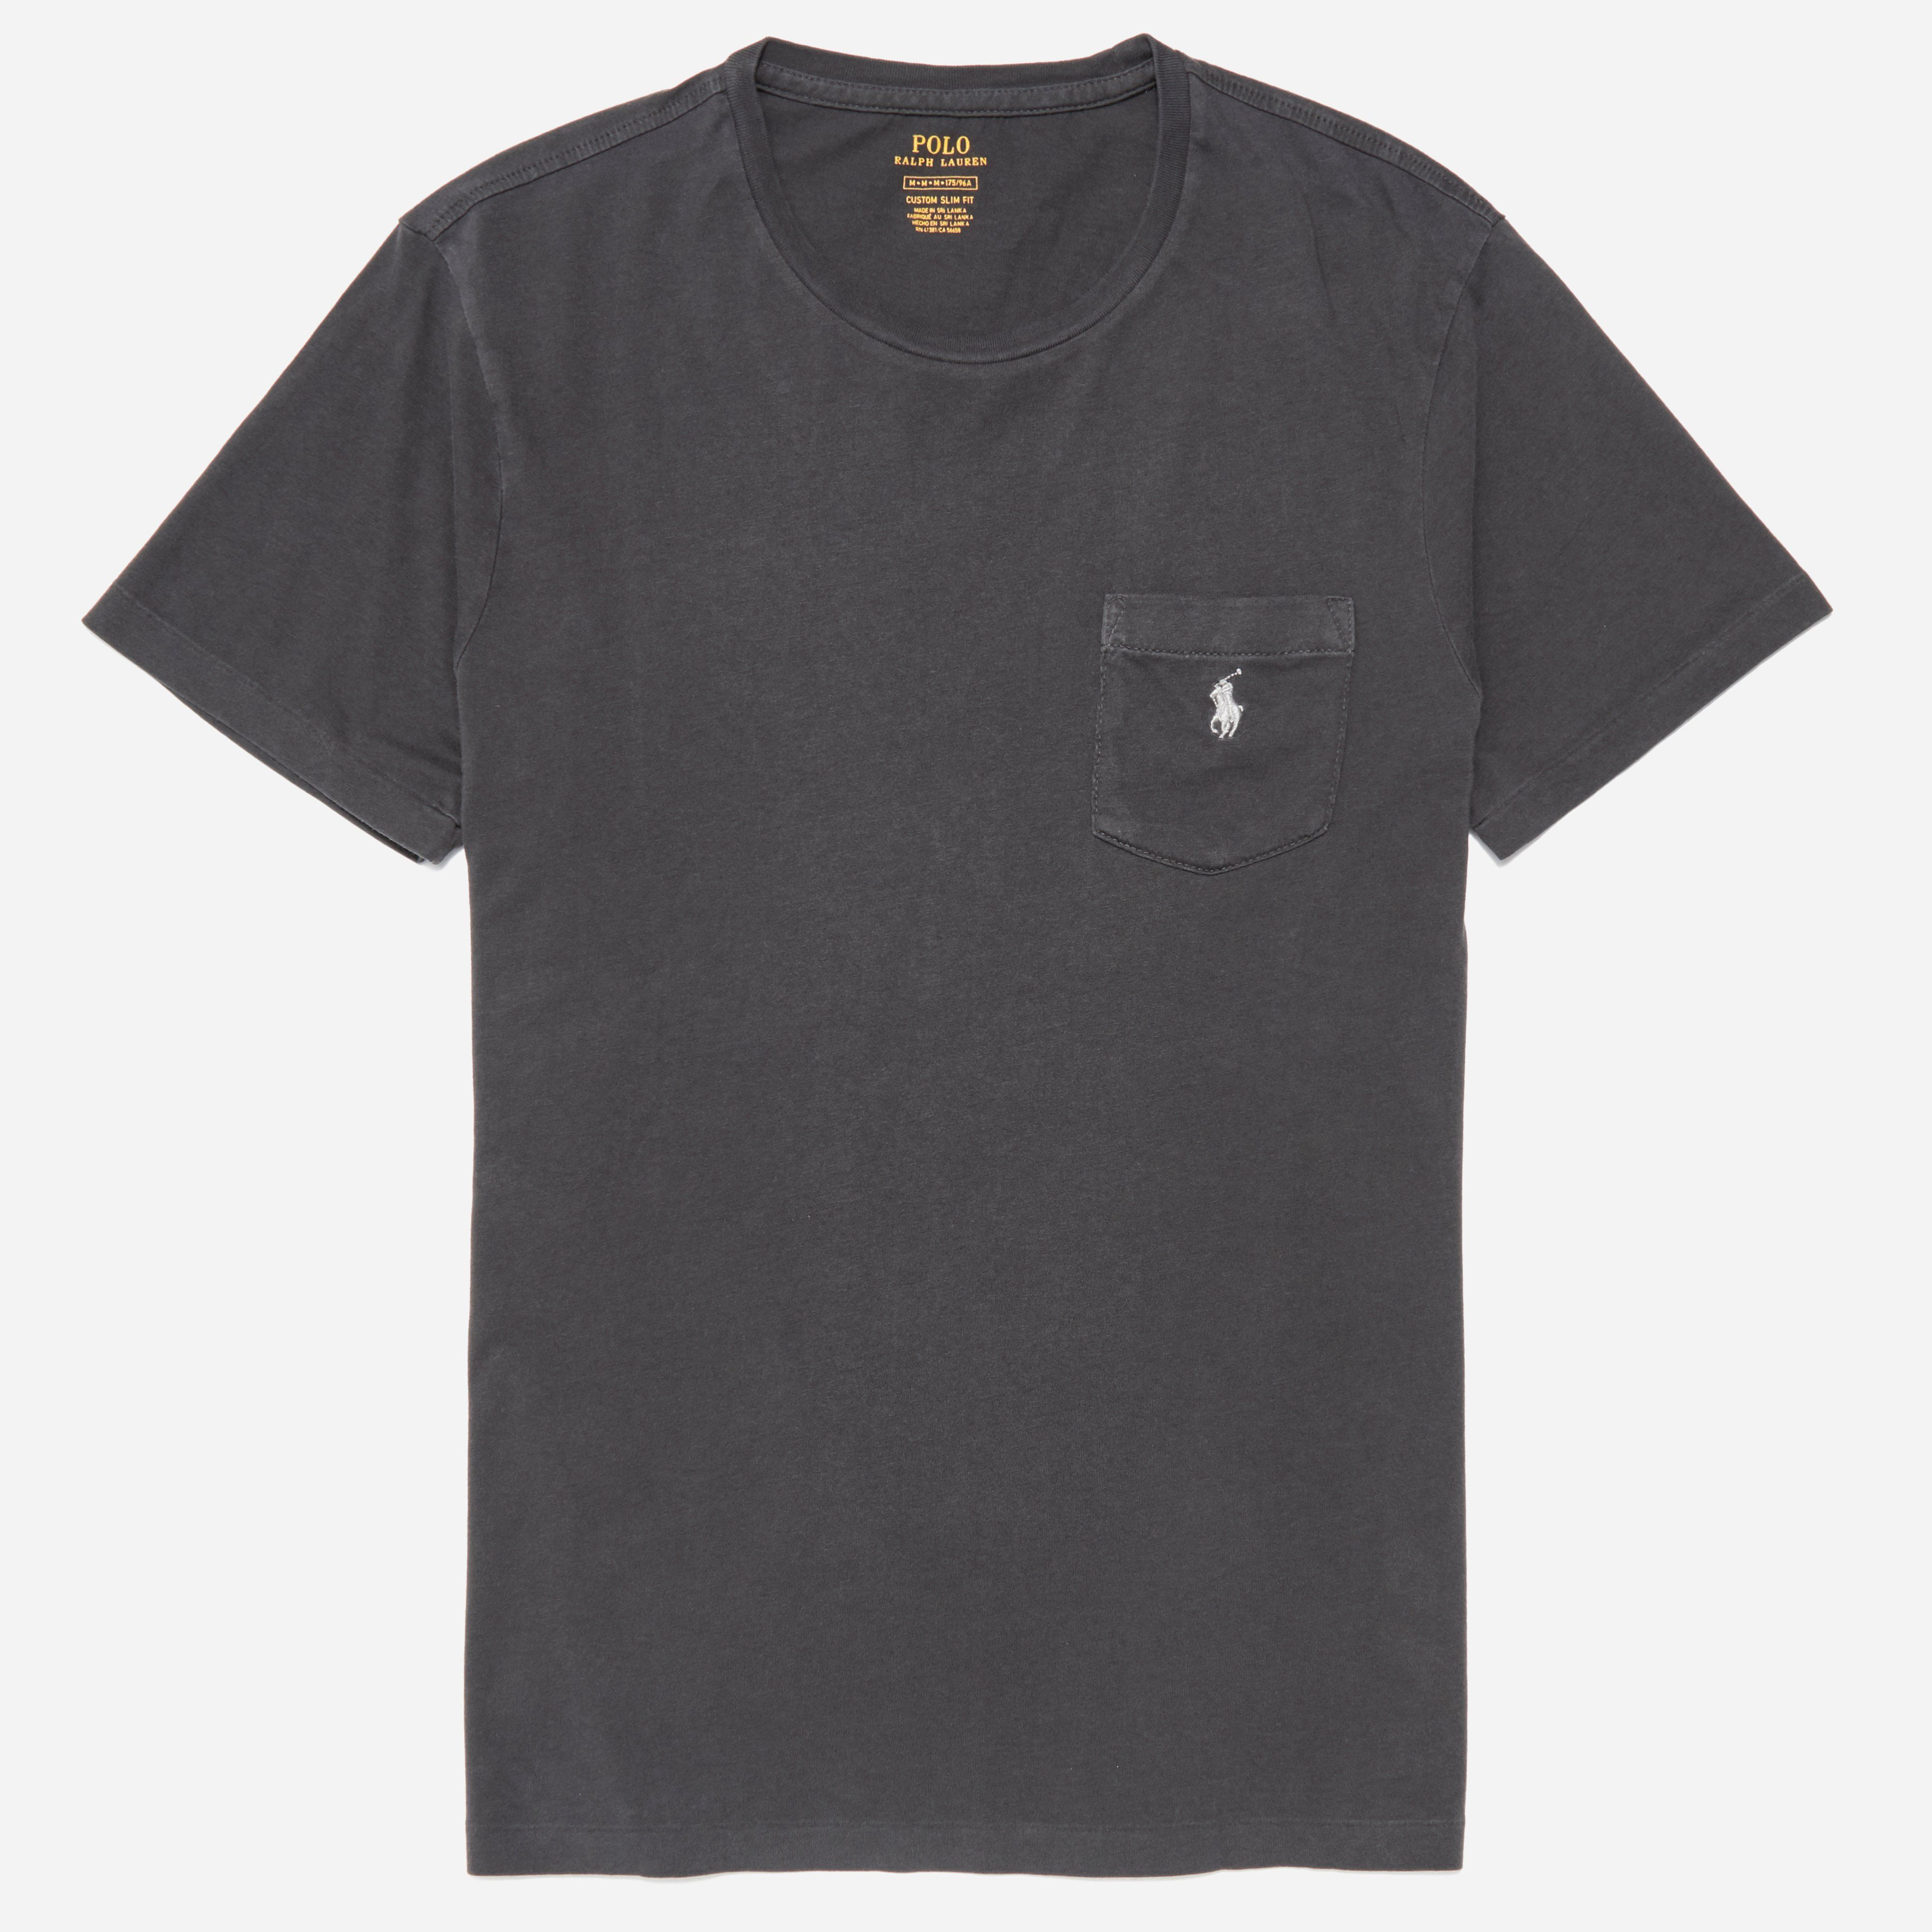 Polo Ralph Lauren Custom Fit Pocket T-shirt